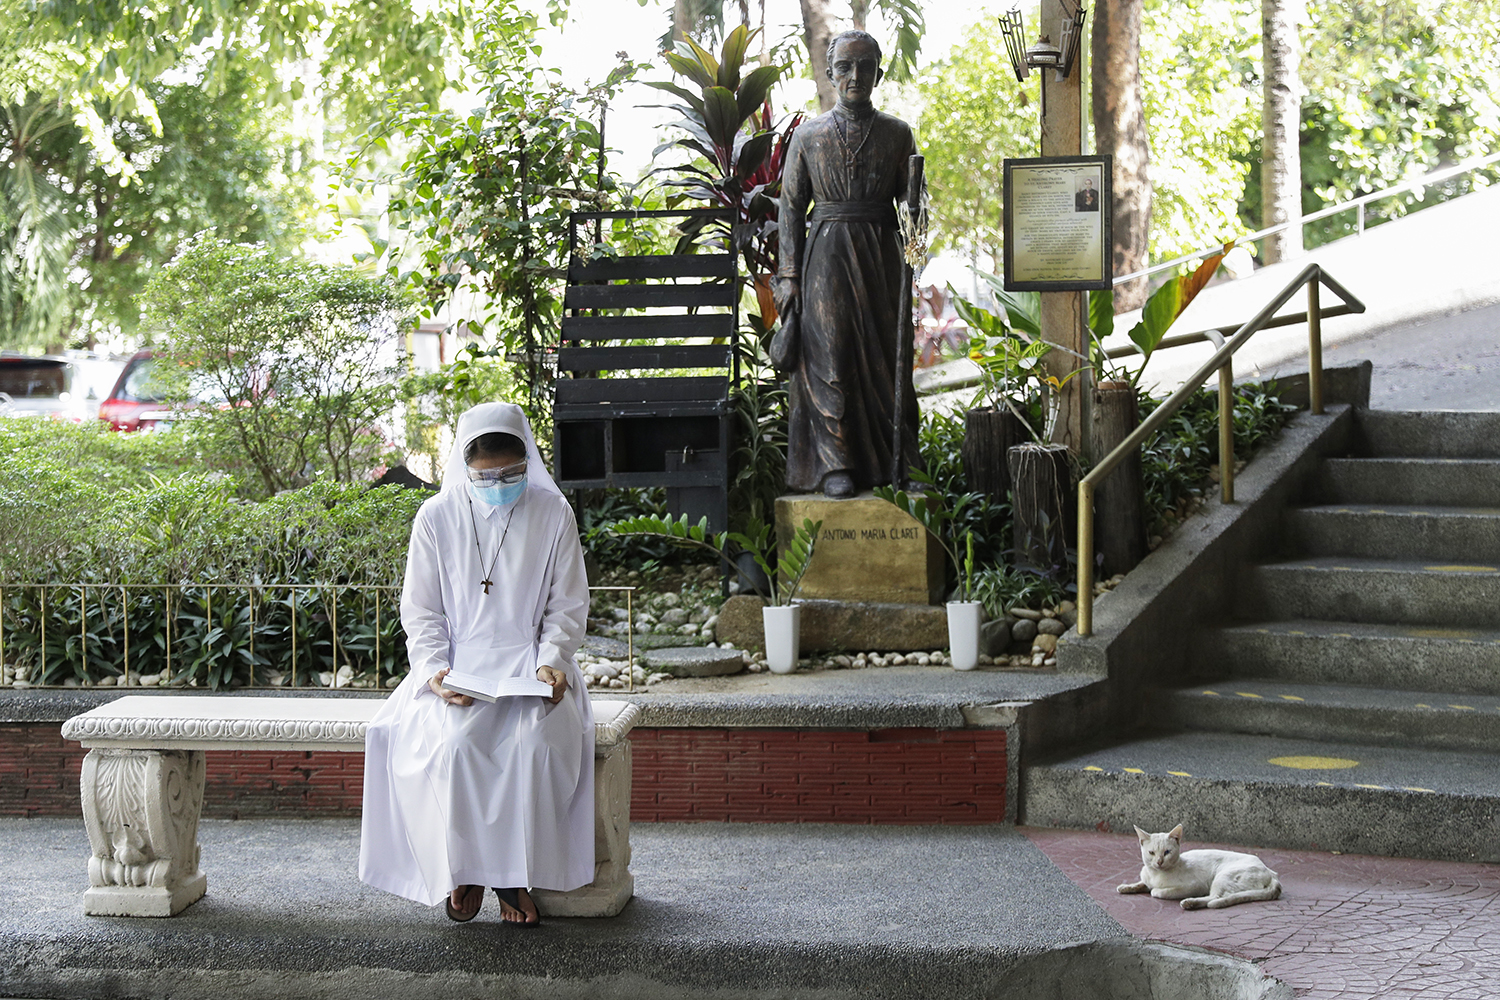 A Catholic nun wearing a protective mask reads outside the Immaculate Heart of Mary Parish Church that turned into a temporary vaccination center in Quezon City, Philippines on Friday, May 21, 2021. Philippine officials have been ordered not to disclose in advance the COVID-19 vaccine brands to be administered in immunization sites after those offering newly arrived Pfizer shots drew big crowds in what could be an indication of public preference for Western vaccines.(AP Photo/Aaron Favila)